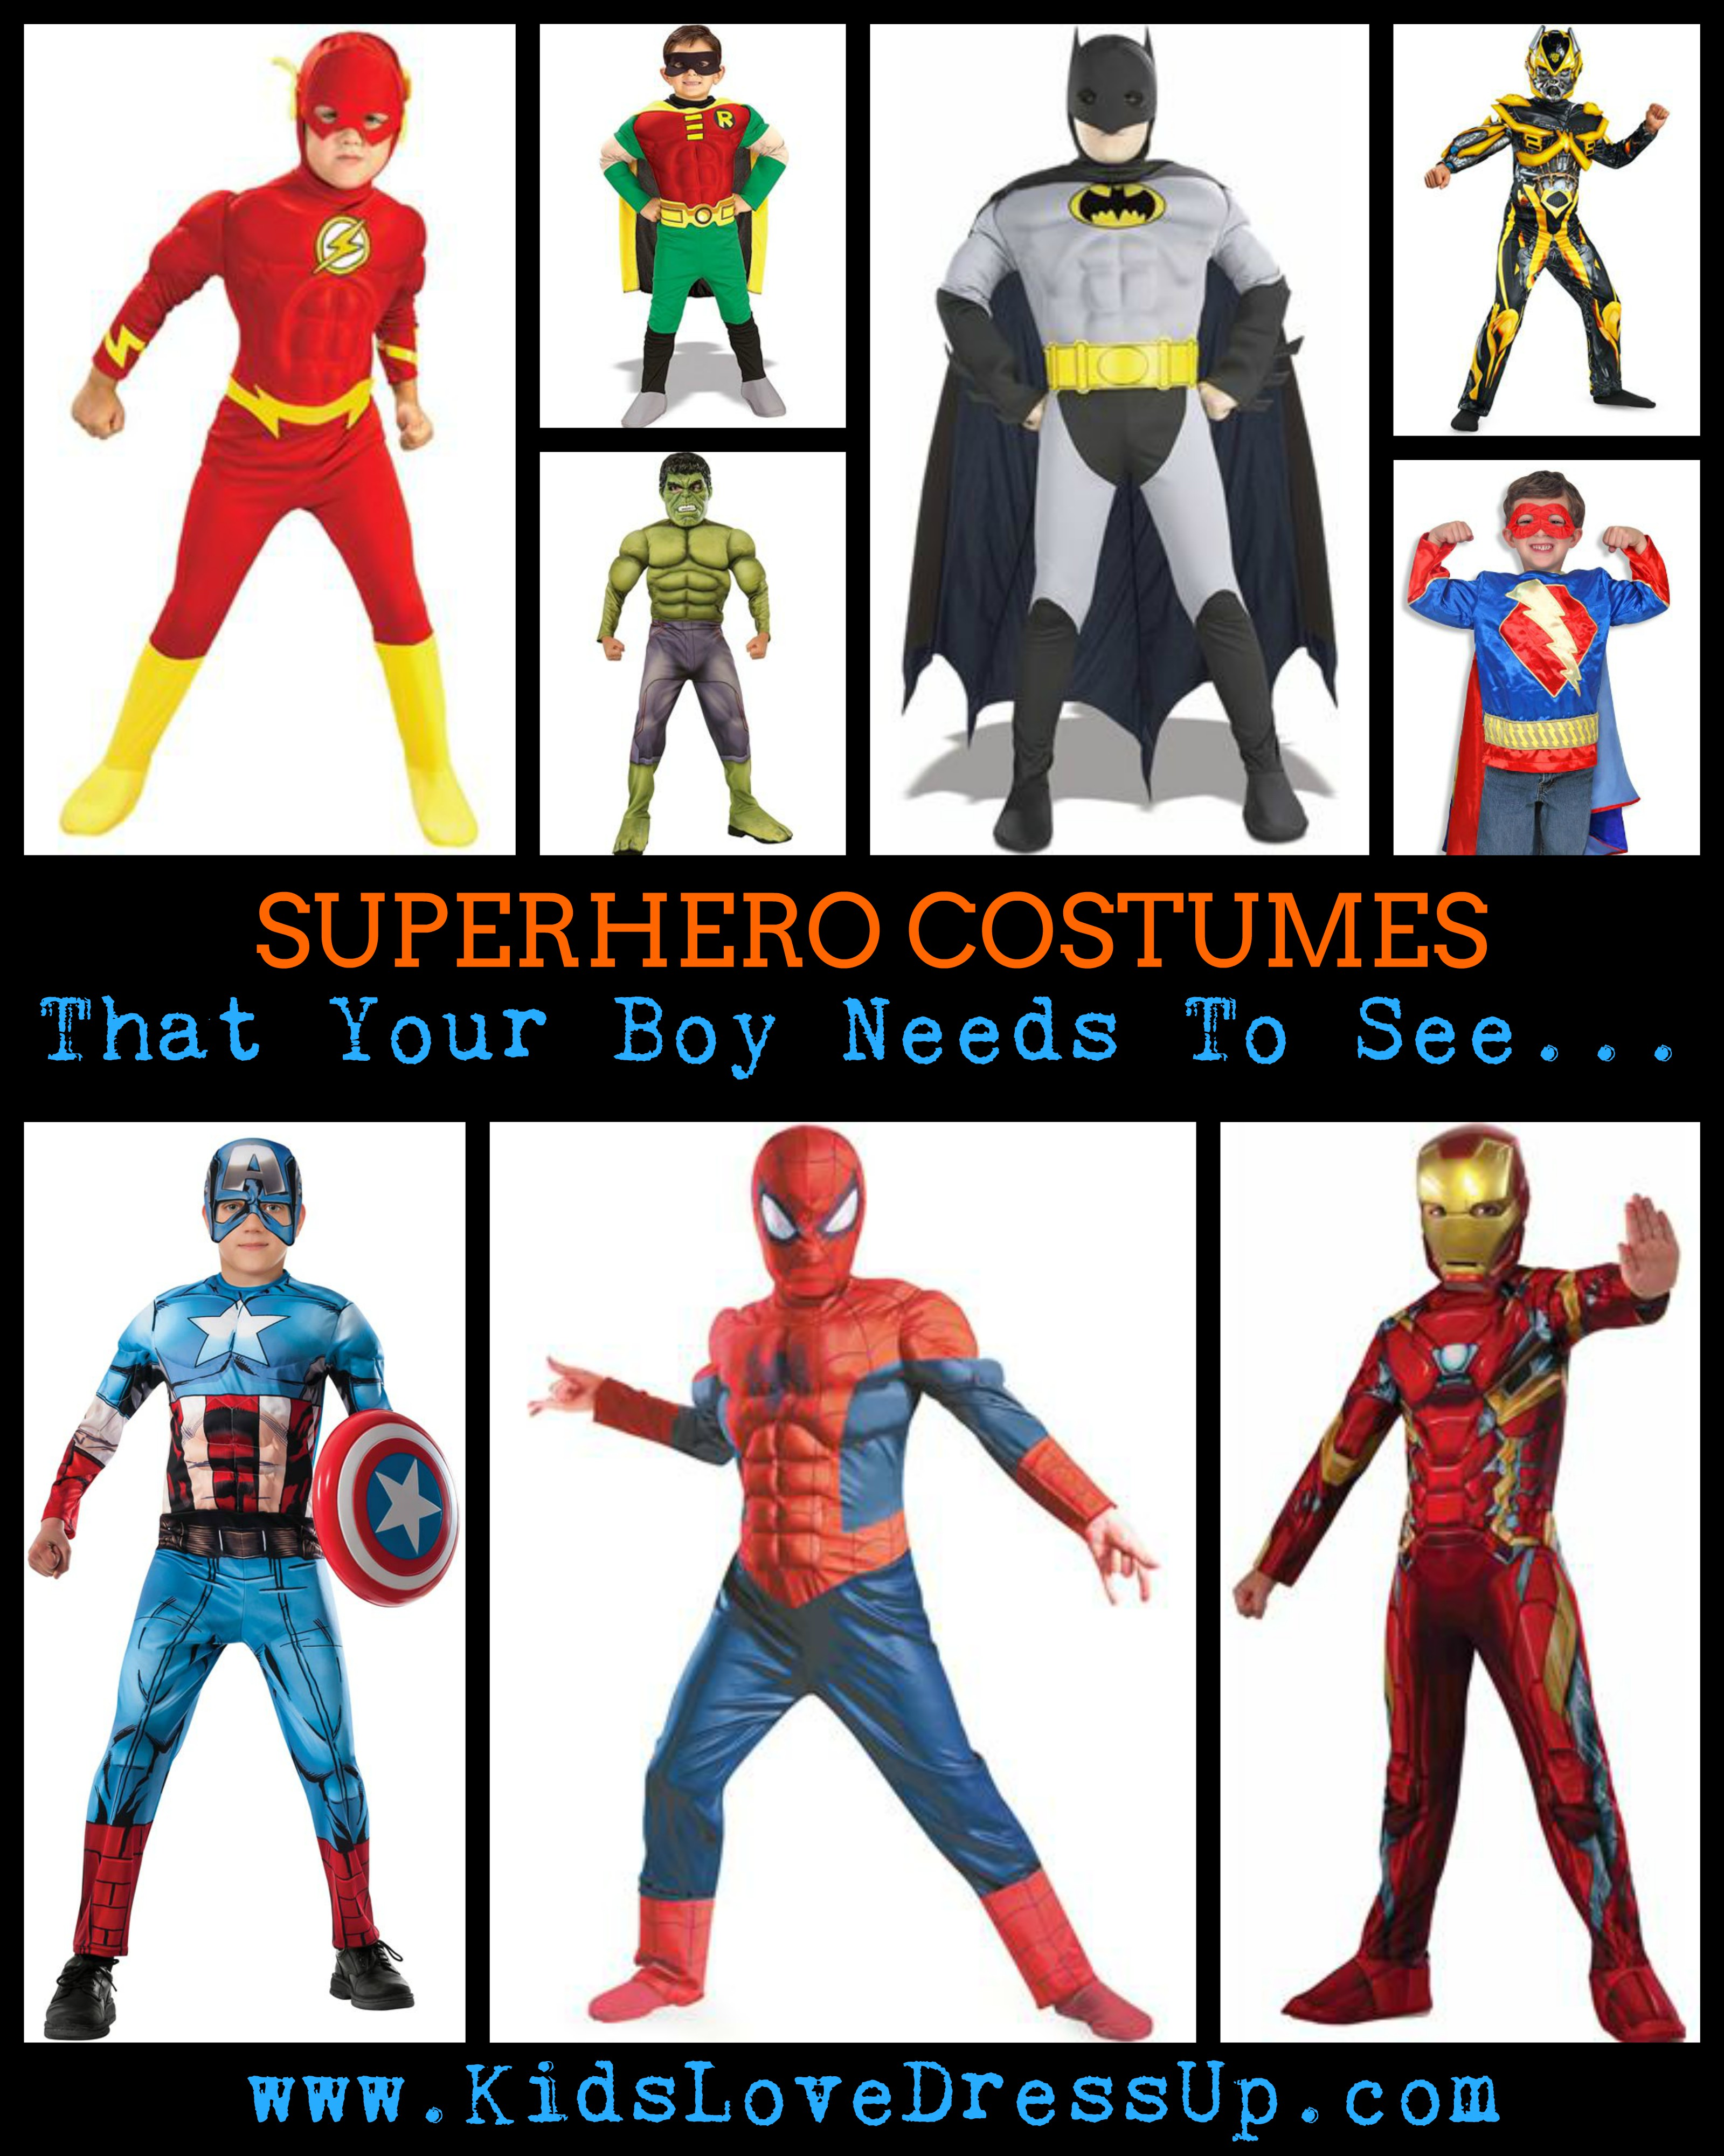 Superhero Costumes For Boys - the superhero dress up clothes for boys that your son needs to see before making his choice for Halloween! Superhero Dress Up For Boys! Looking for some great superhero costumes for boys? Look no further - we've got you covered. Kidslovedressup.com will show you which superhero costumes are the BEST! Superman costume, batman costume, the hulk costume, Robin costume, Spiderman costume, Captain America Costume, The Flash Costume, Superman Costume, Ironman Costume, and Super-Me Costume!